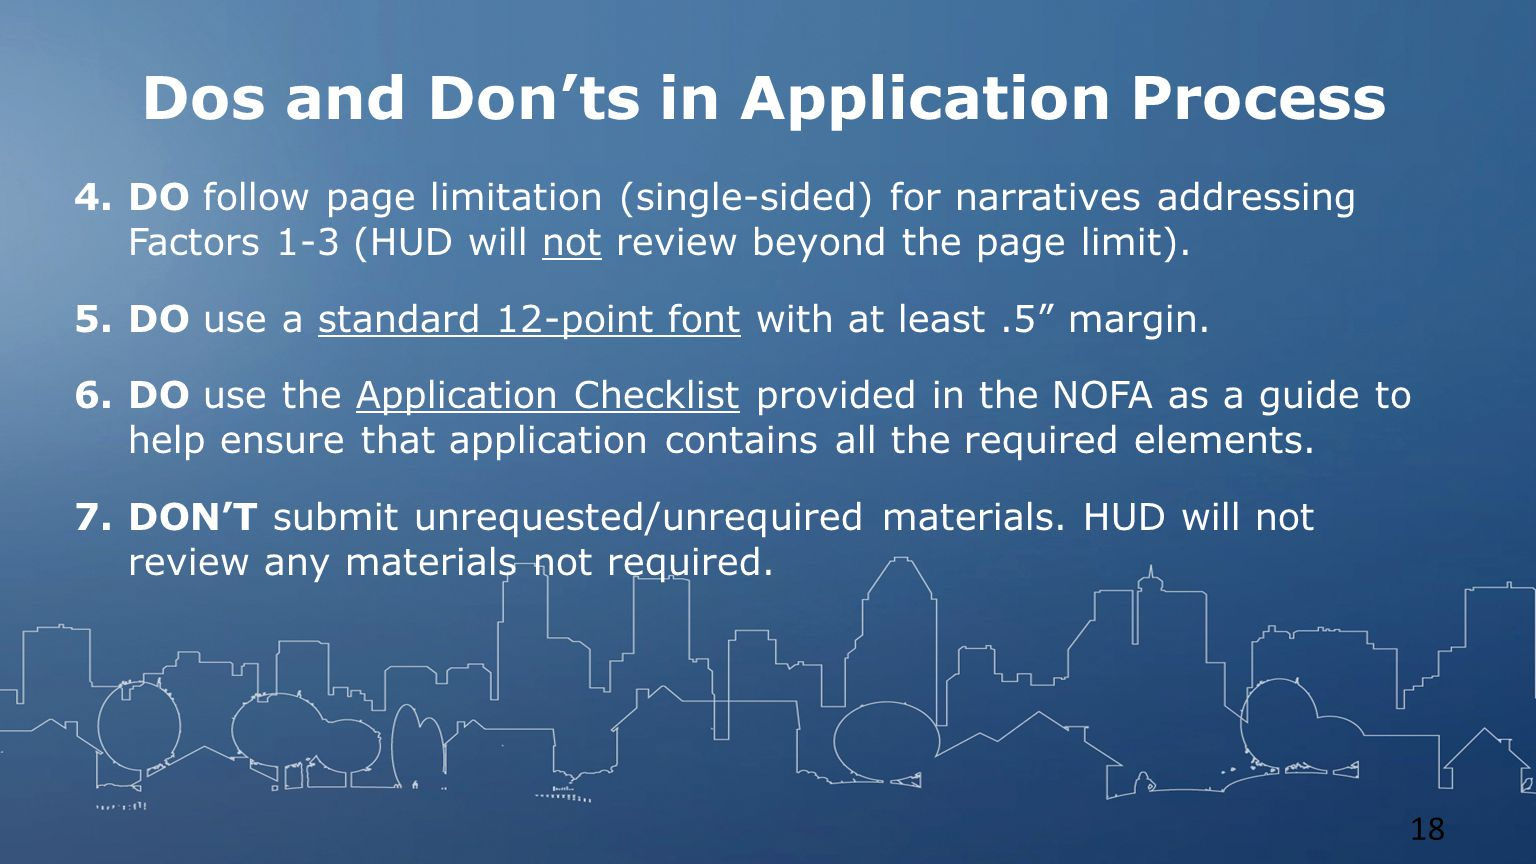 Dos and Don'ts in Application Process 4.DO follow page limitation (single-sided) for narratives addressing Factors 1-3 (HUD will not review beyond the page limit).